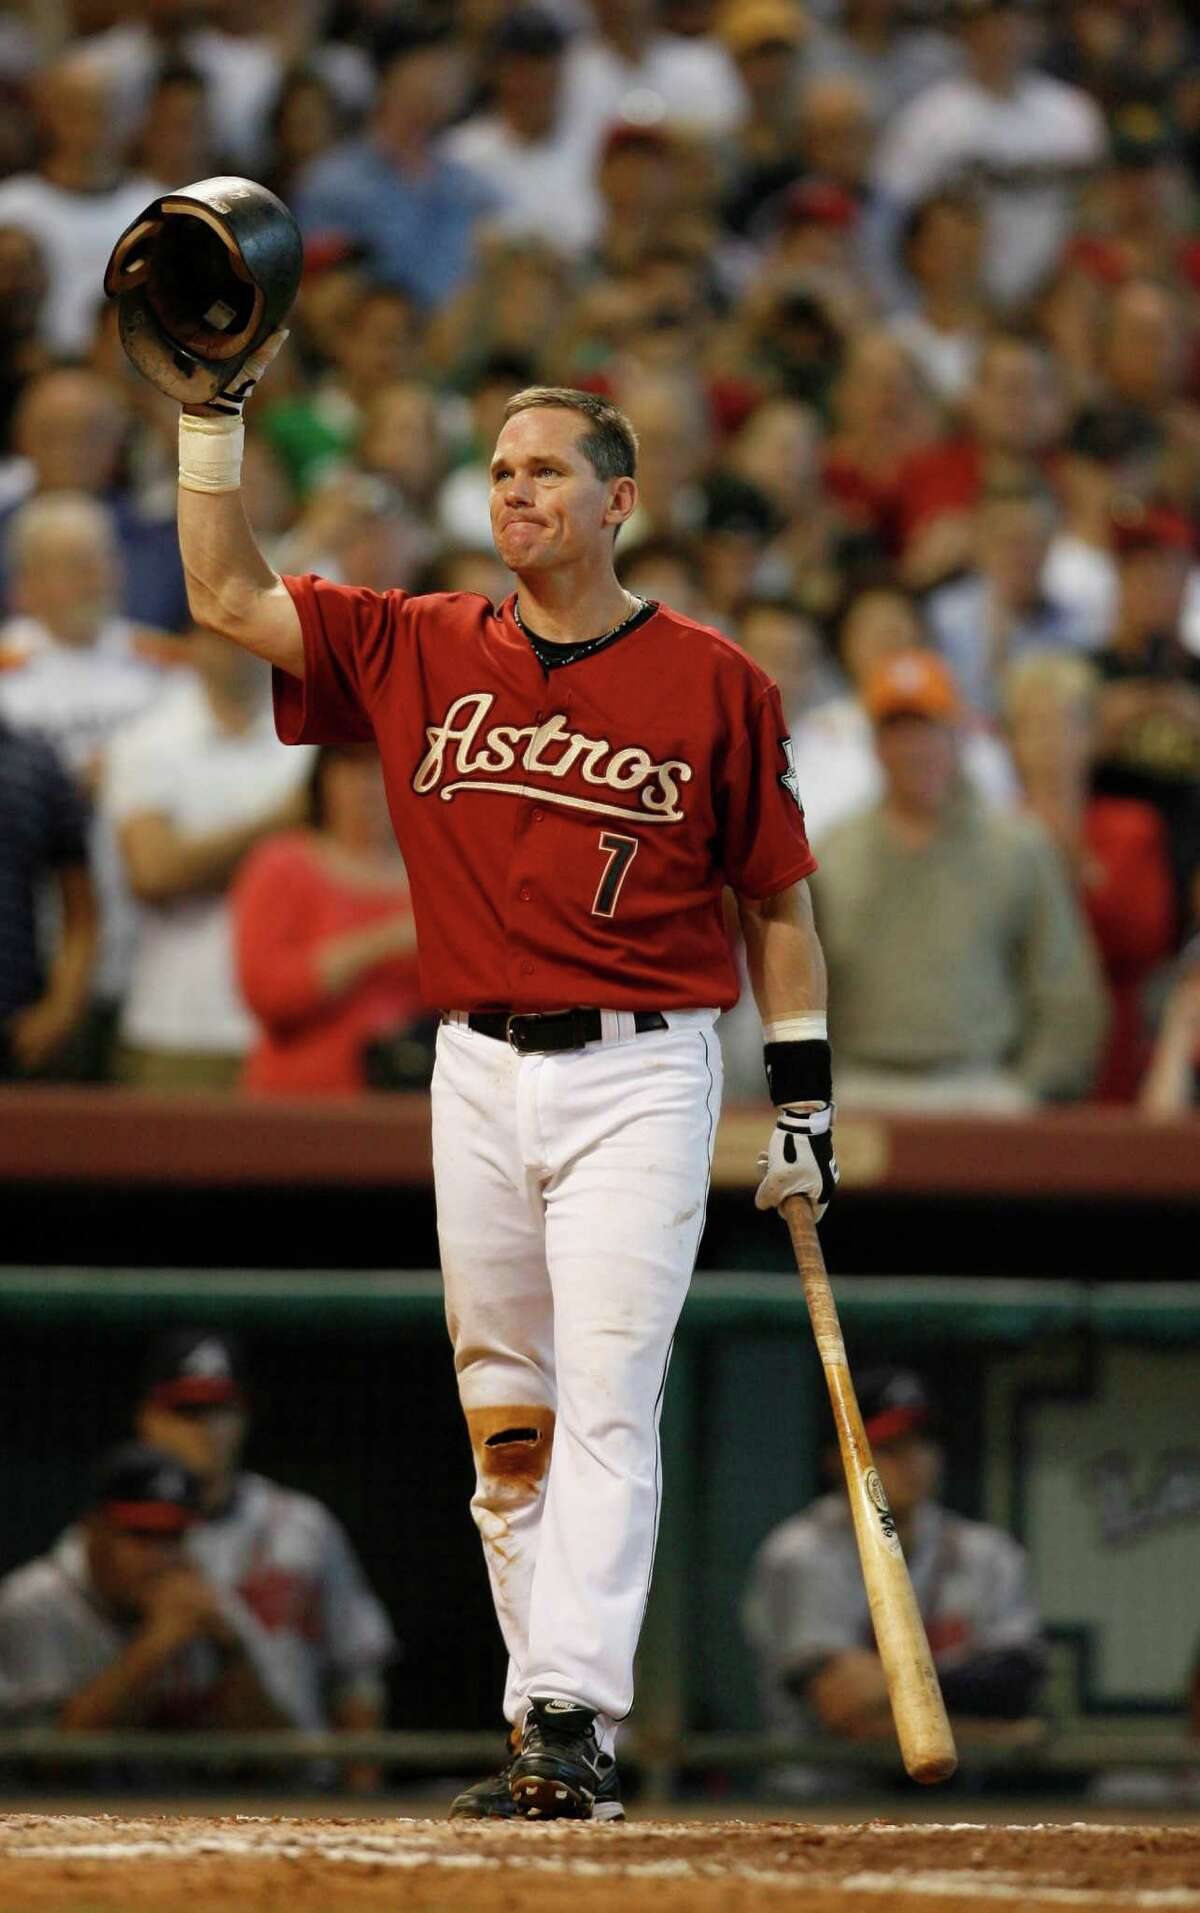 ASTROS 3. Craig Biggio, No. 7 He's the only career Astro in the Baseball Hall of Fame and his No. 7 is ubiquitous around Minute Maid Park. Another cool thing about Biggio's career: It spanned three different Astros uniform eras, so there are a variety of Biggio jerseys to be had.